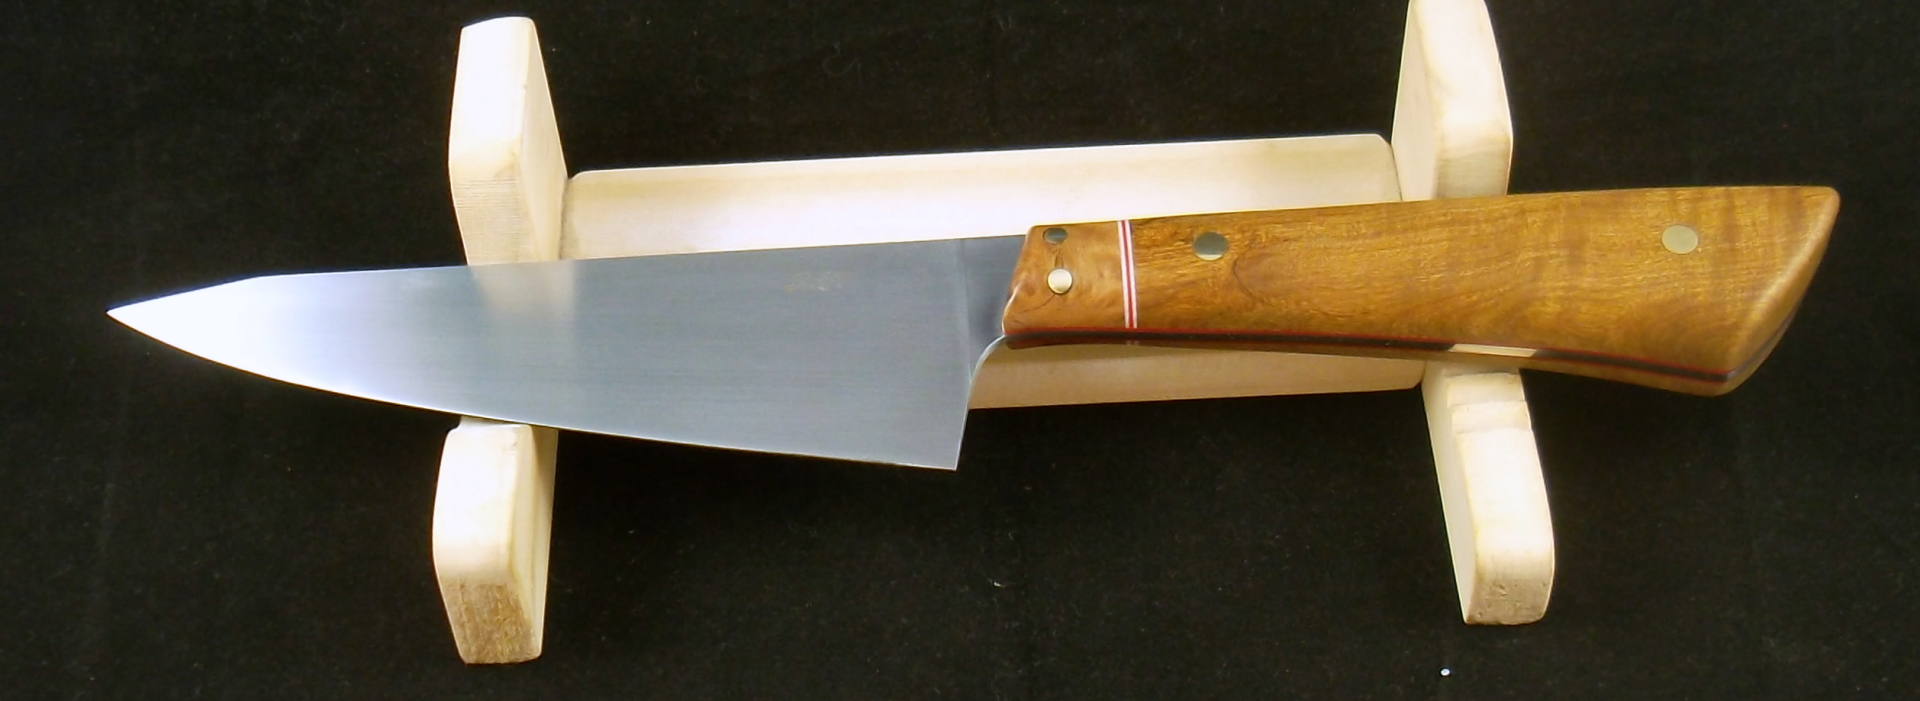 Handmade Knives, 12C27 Boning/Utility with sandalwood and red mallee. SLH Blades, Stacy Hall